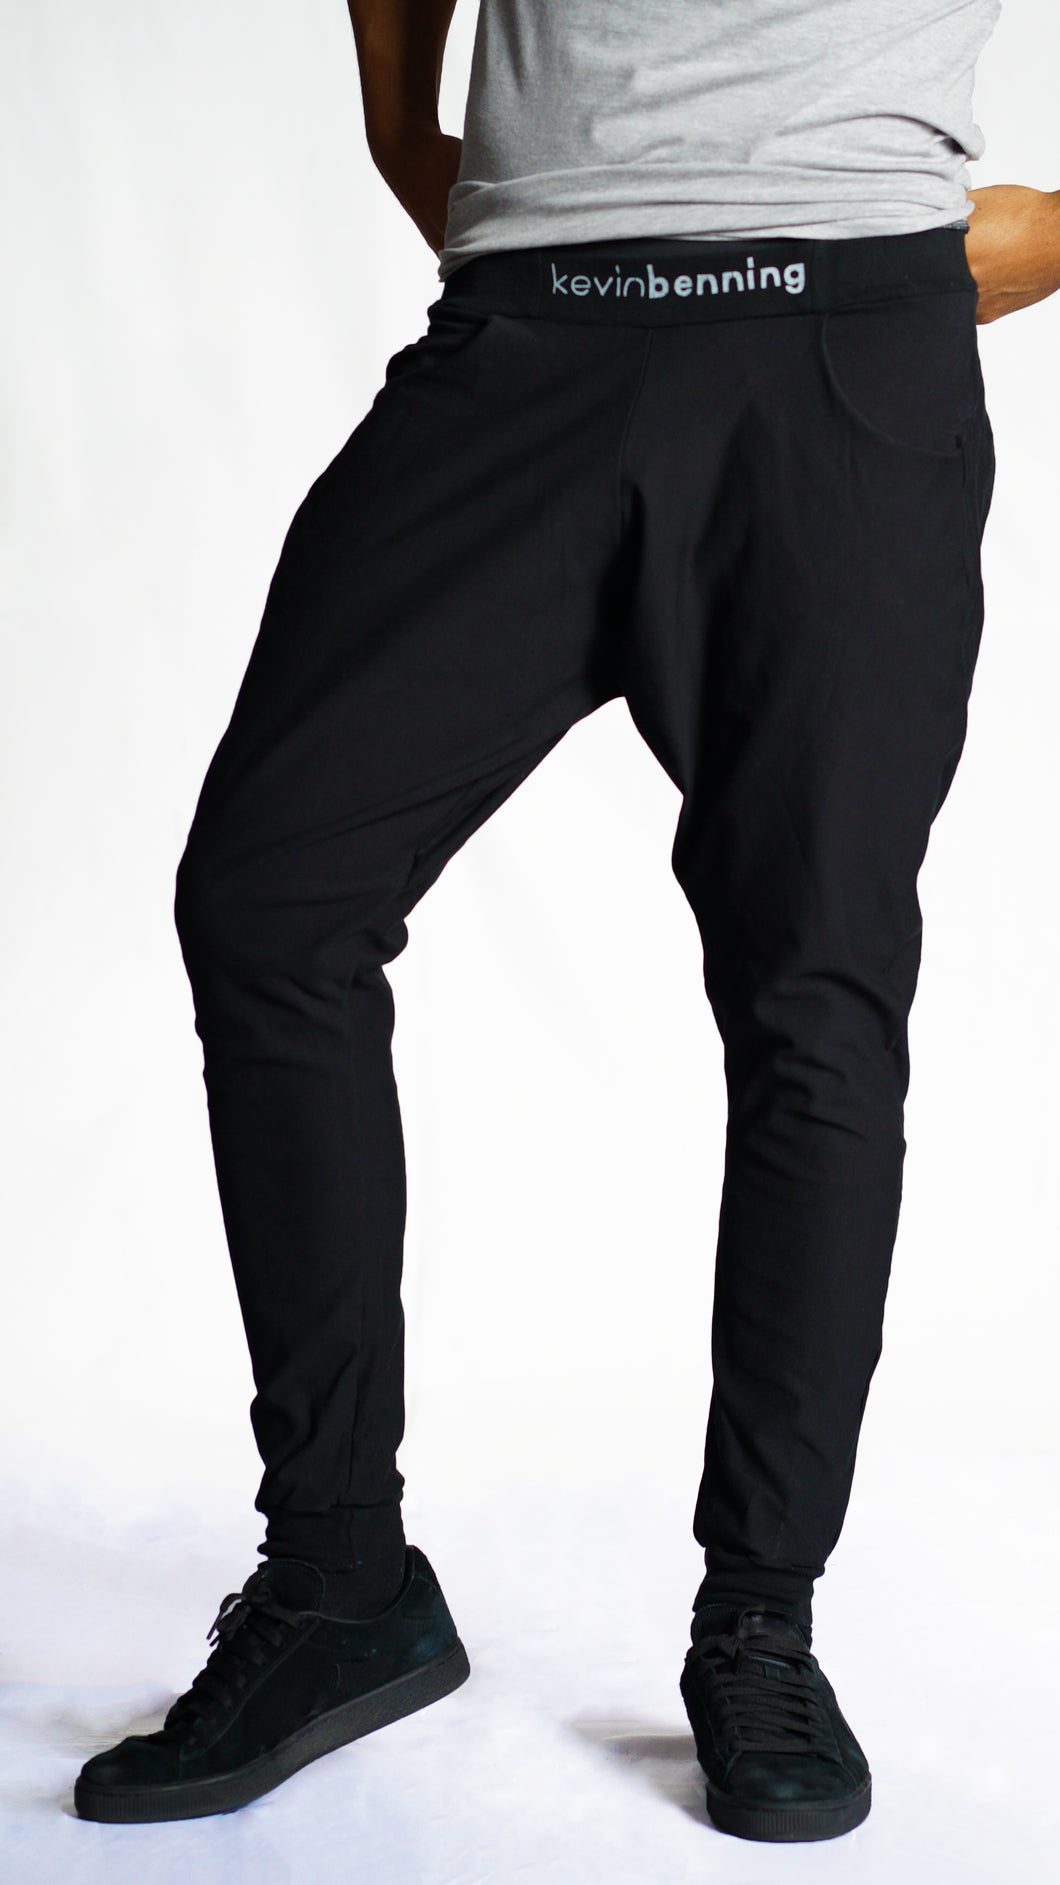 KB Original Pants in Black